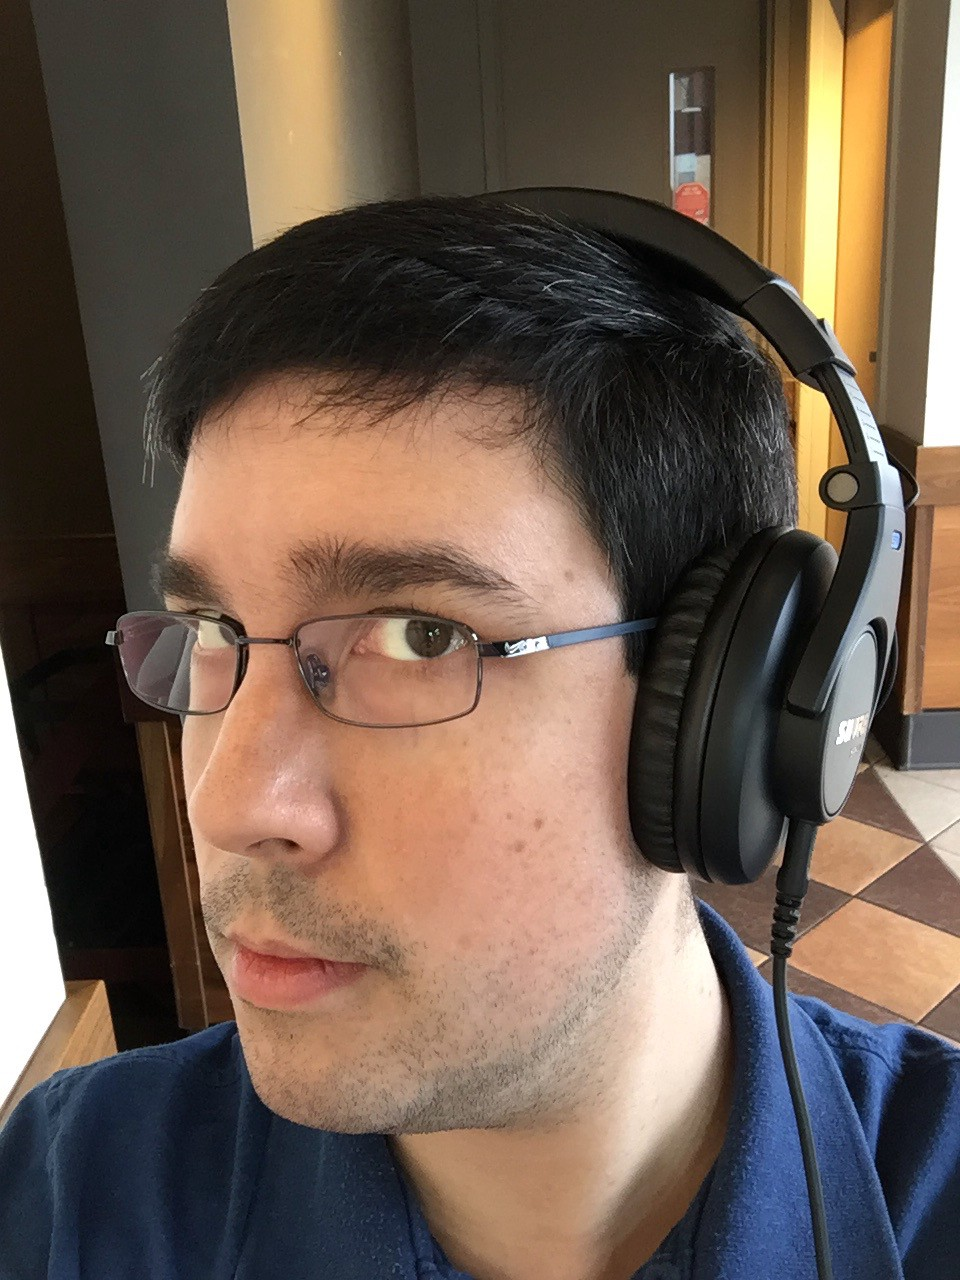 245bfd833af Shure SRH440 Headphone Review: An alternate studio headphone that's ...